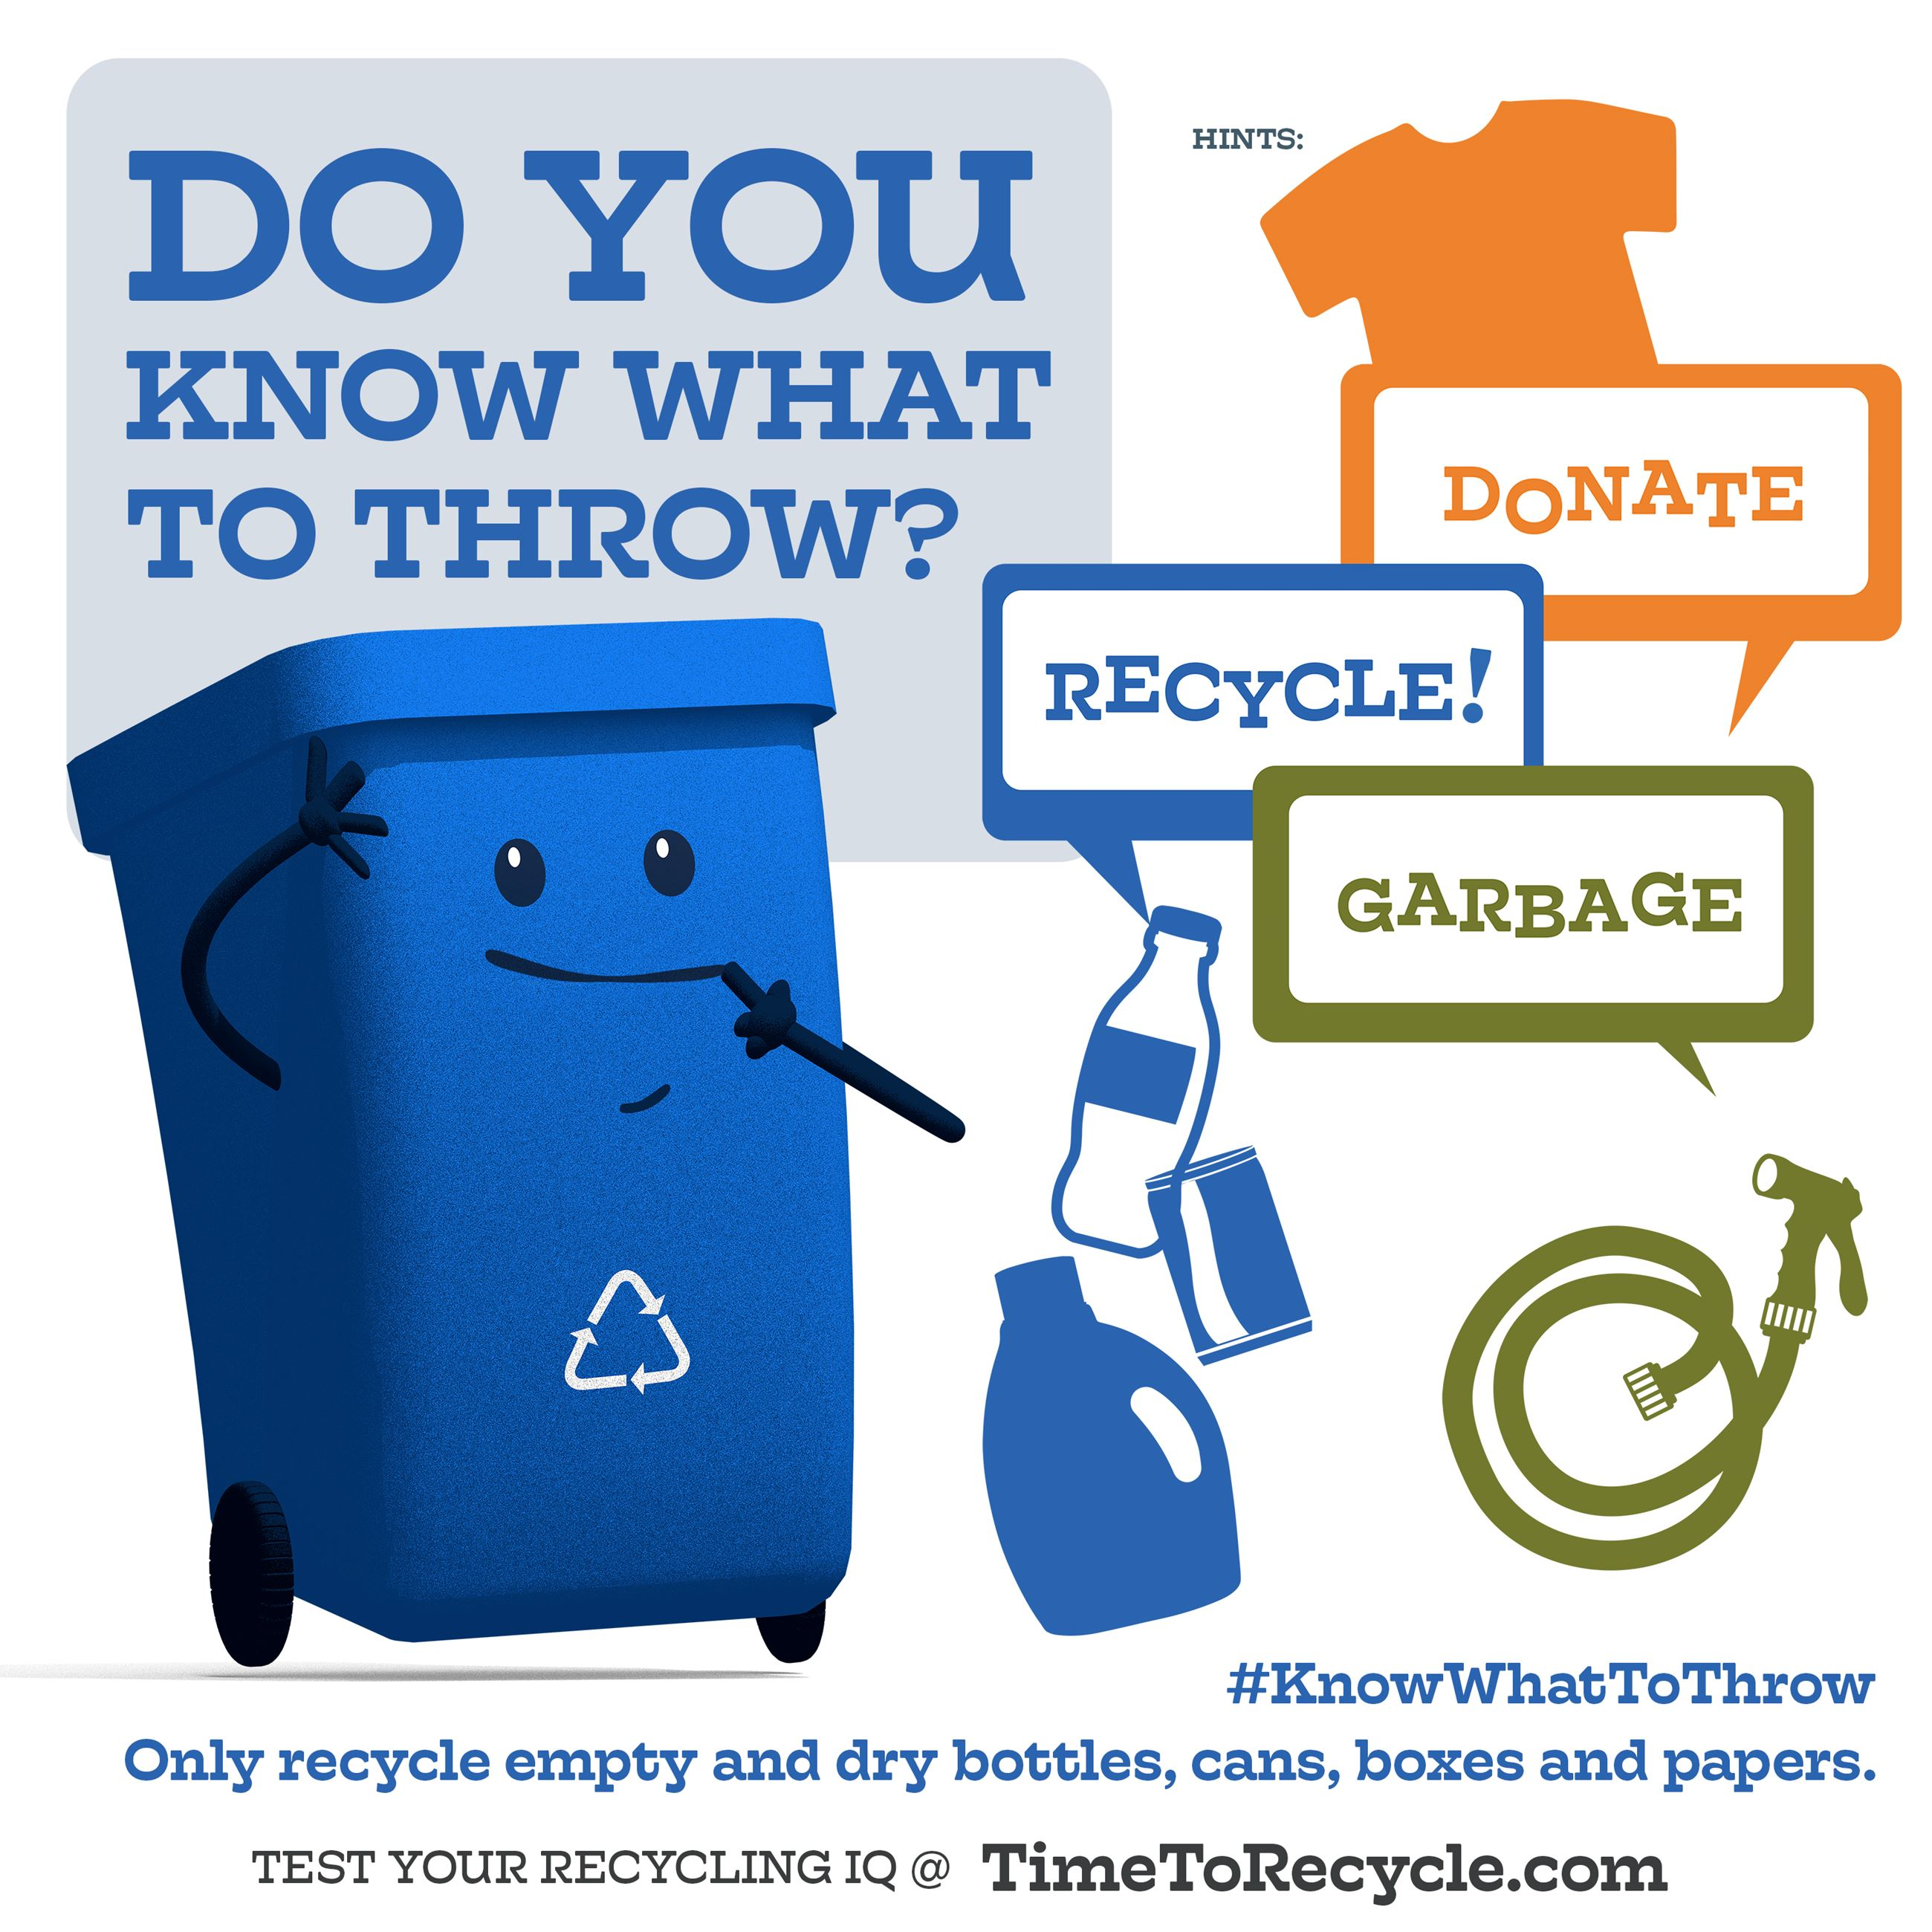 Carter the Recycle Cart wants to know if you know what to throw? Opens in new window